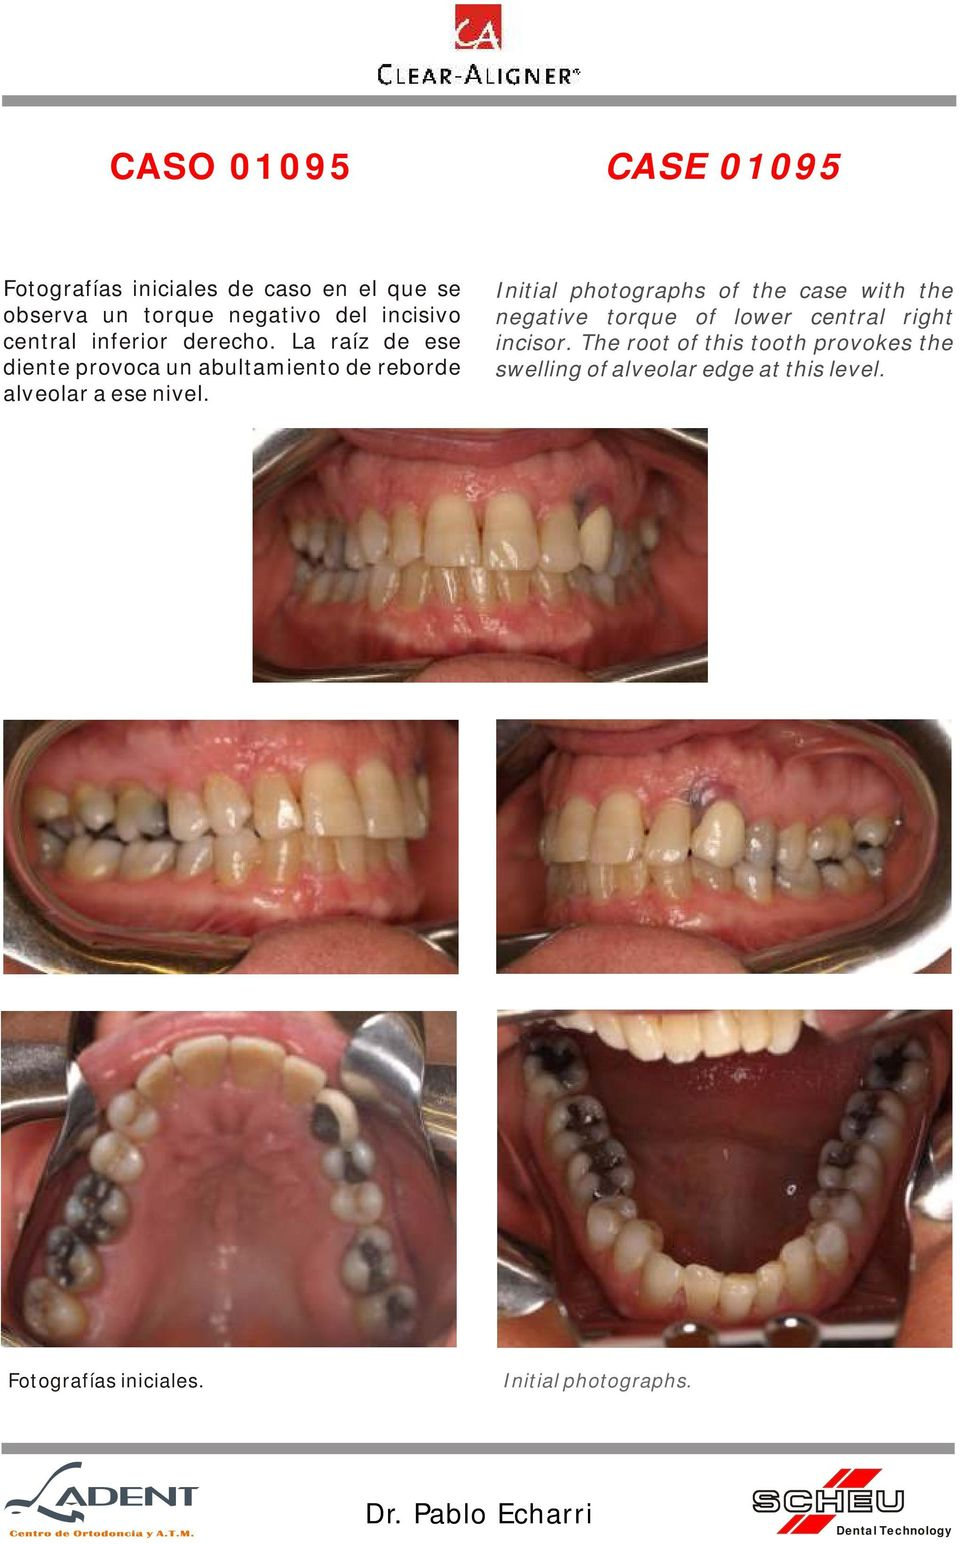 Initial photographs of the case with the negative torque of lower central right incisor.